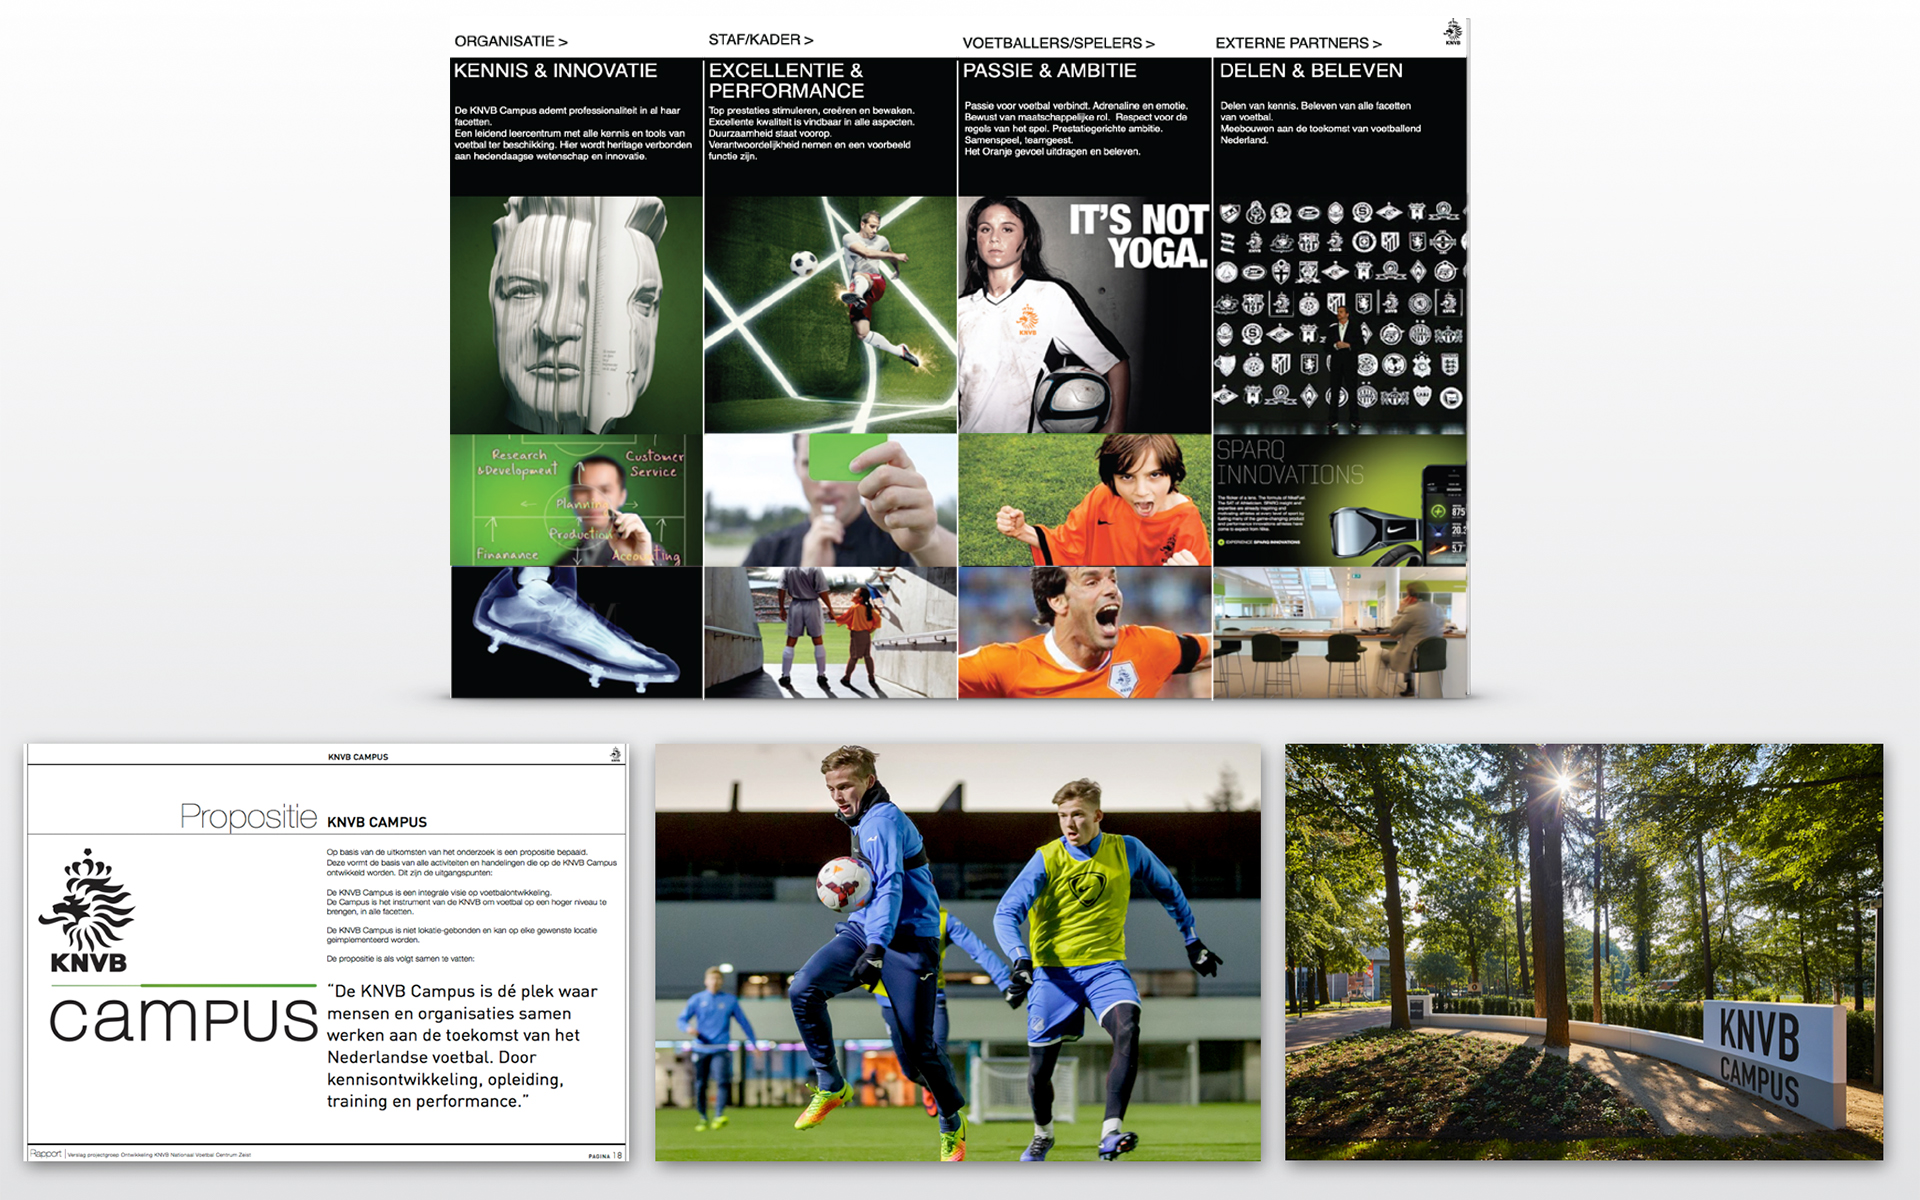 KNVB Campus Zeist DAY Creative mood presentation Vision on brand and experience